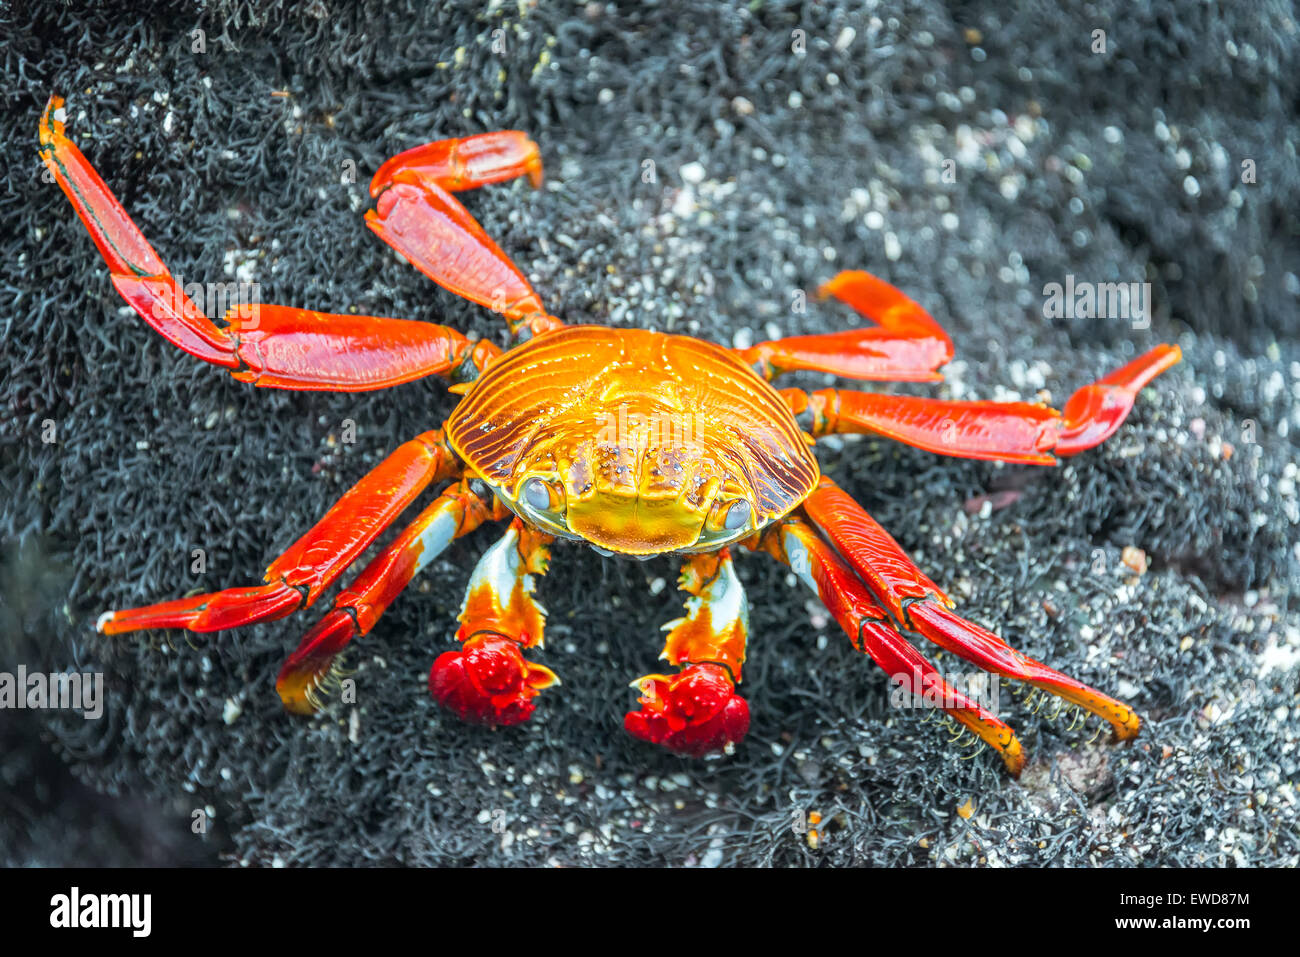 Closeup view of a Sally Lightfoot Crab on Isabela Island in the Galapagos Islands in Ecuador - Stock Image